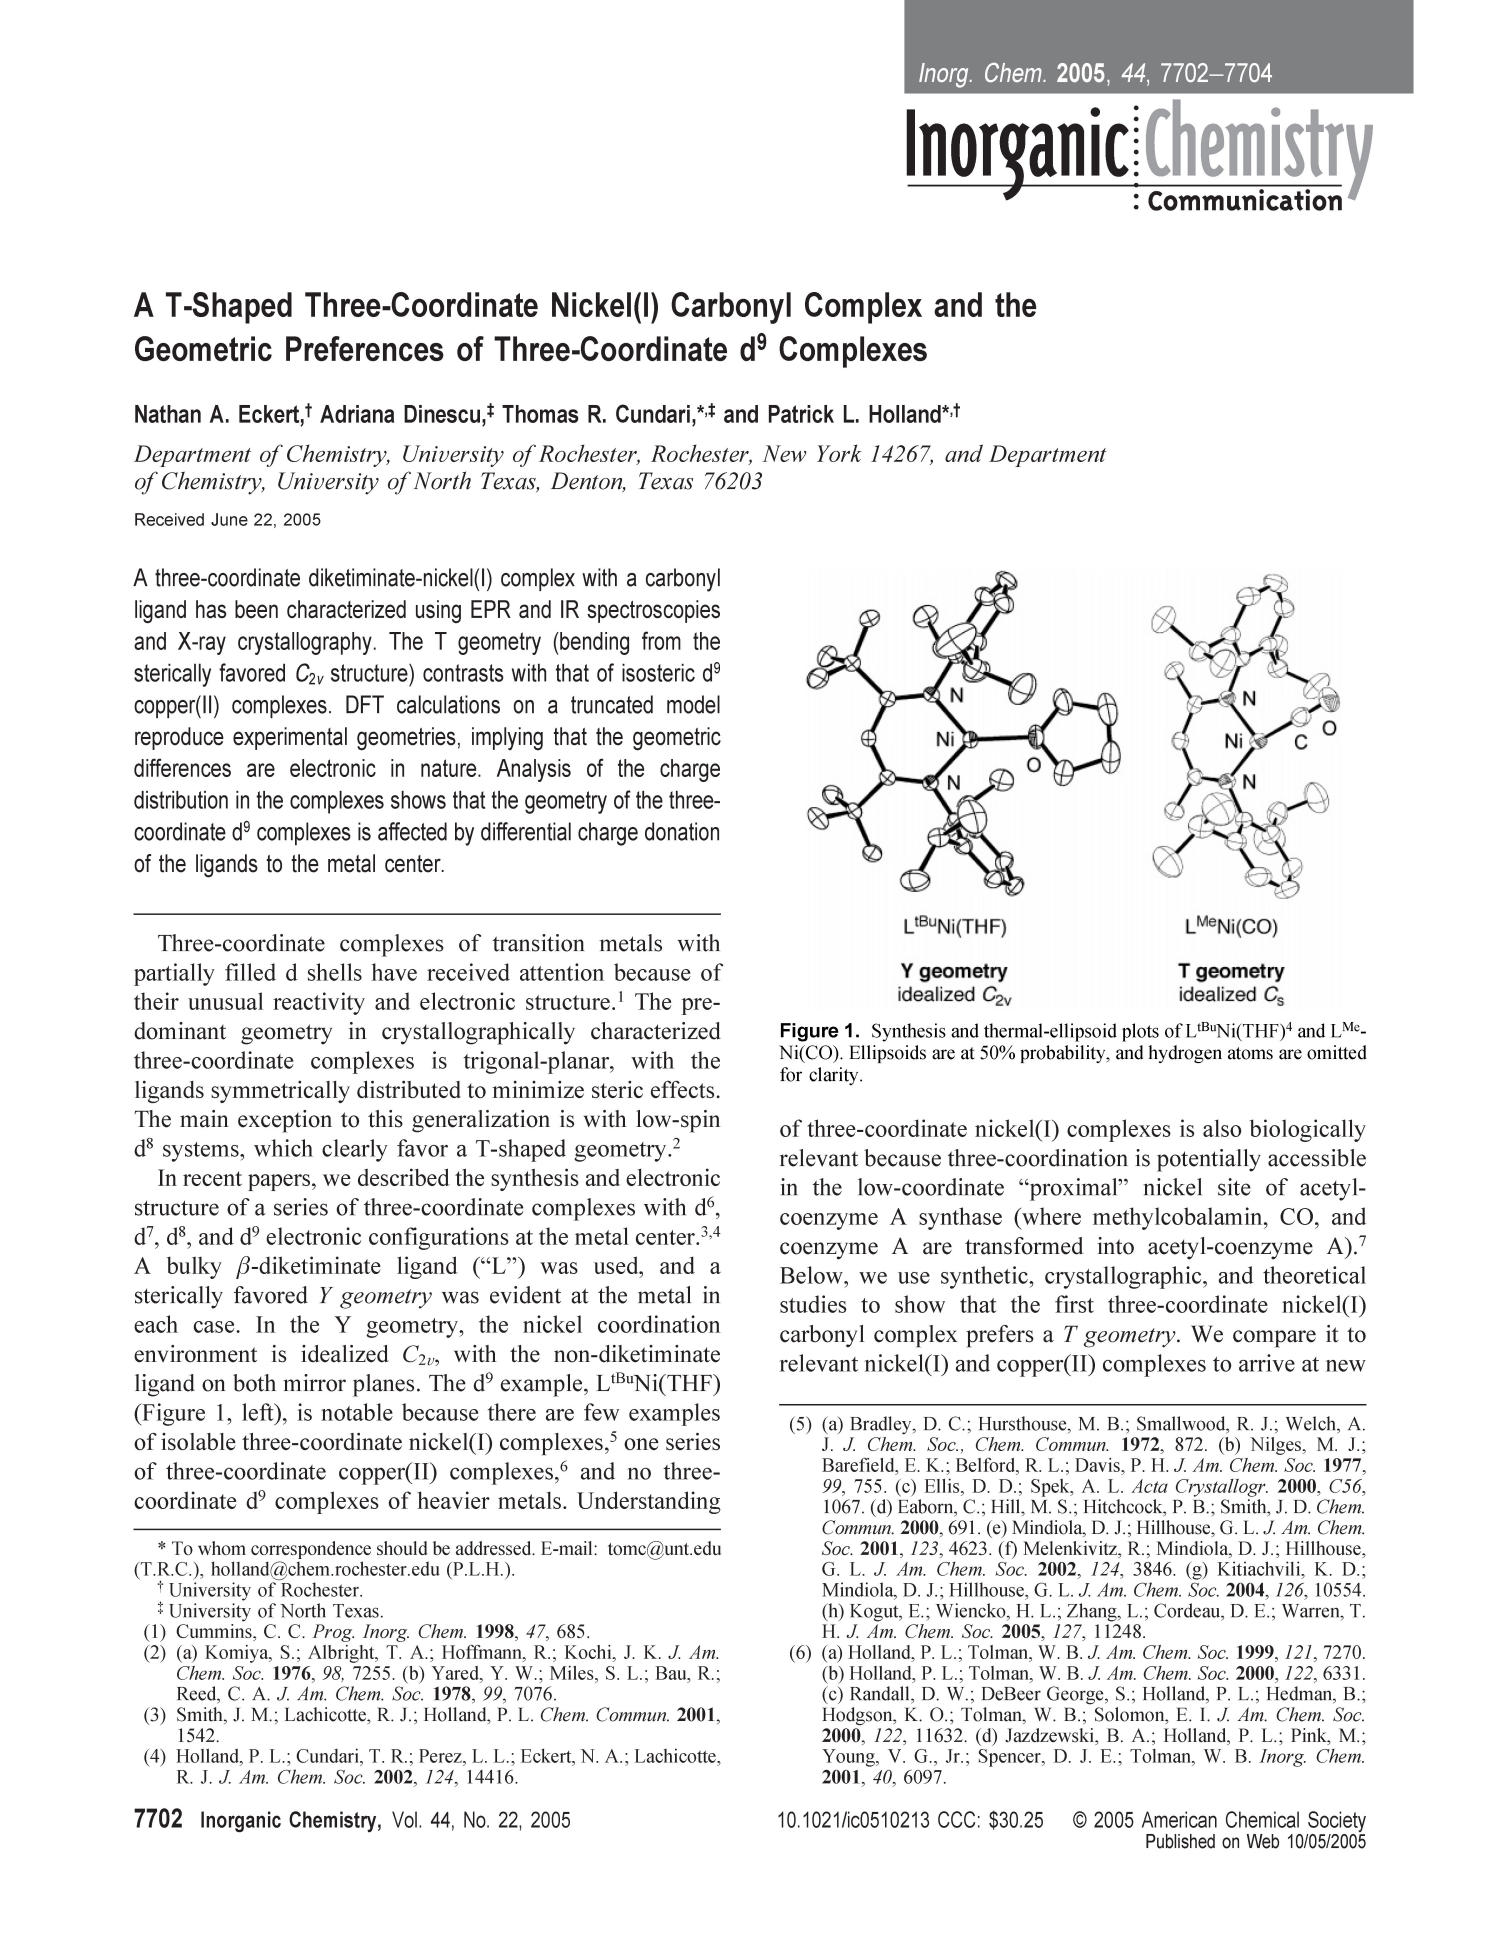 A T-Shaped Three-Coordinate Nickel(l) Carbonyl Complex and the Geometric Preferences of Three-Coordinate d9 Complexes                                                                                                      7702